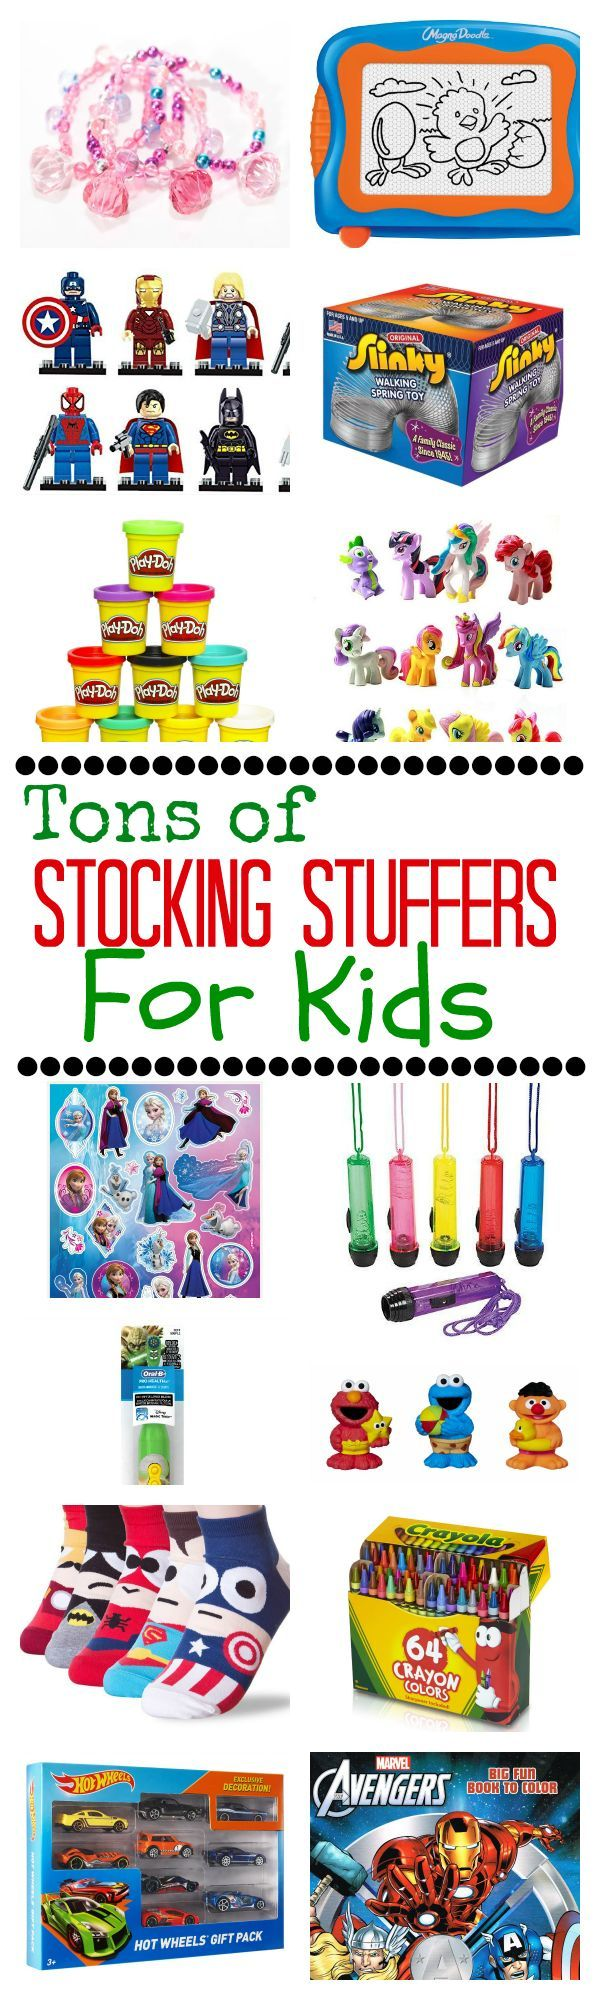 A Whole Bunch of Stocking Stuffer Ideas for Kids